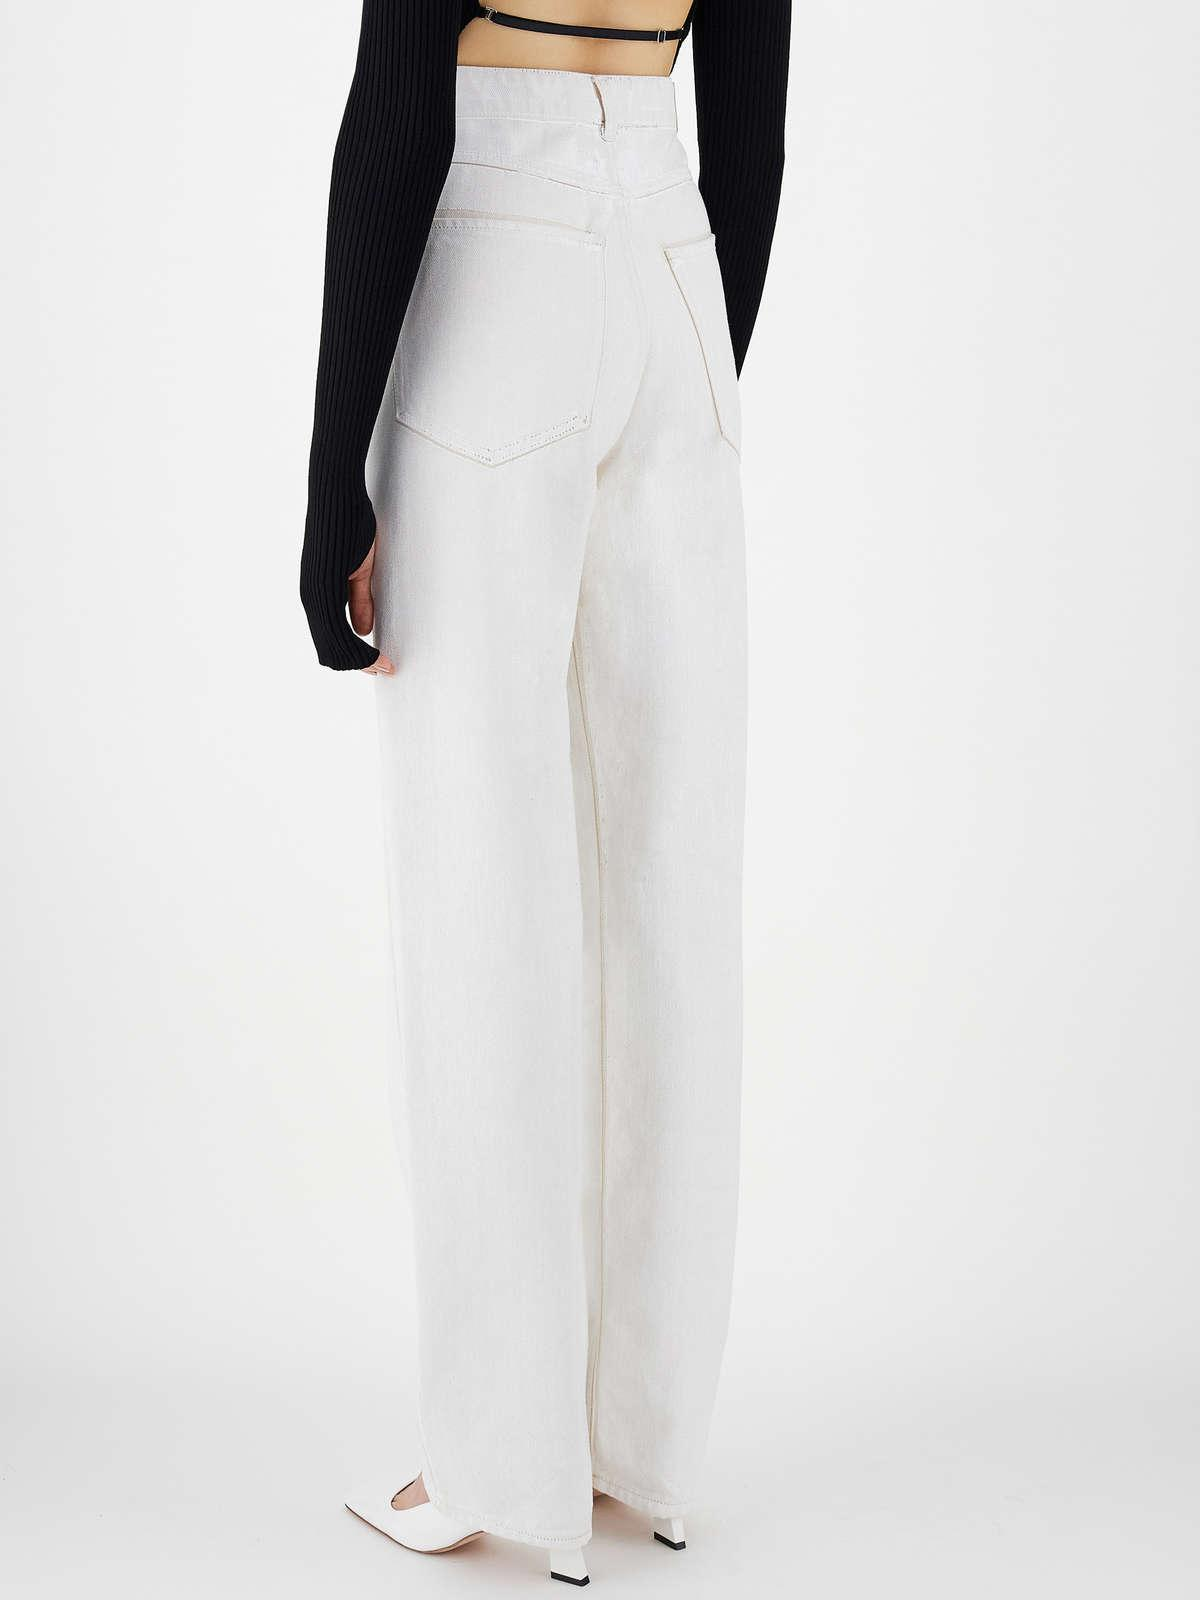 Womens Max Mara Trousers And Jeans   5-Pocket Jeans White